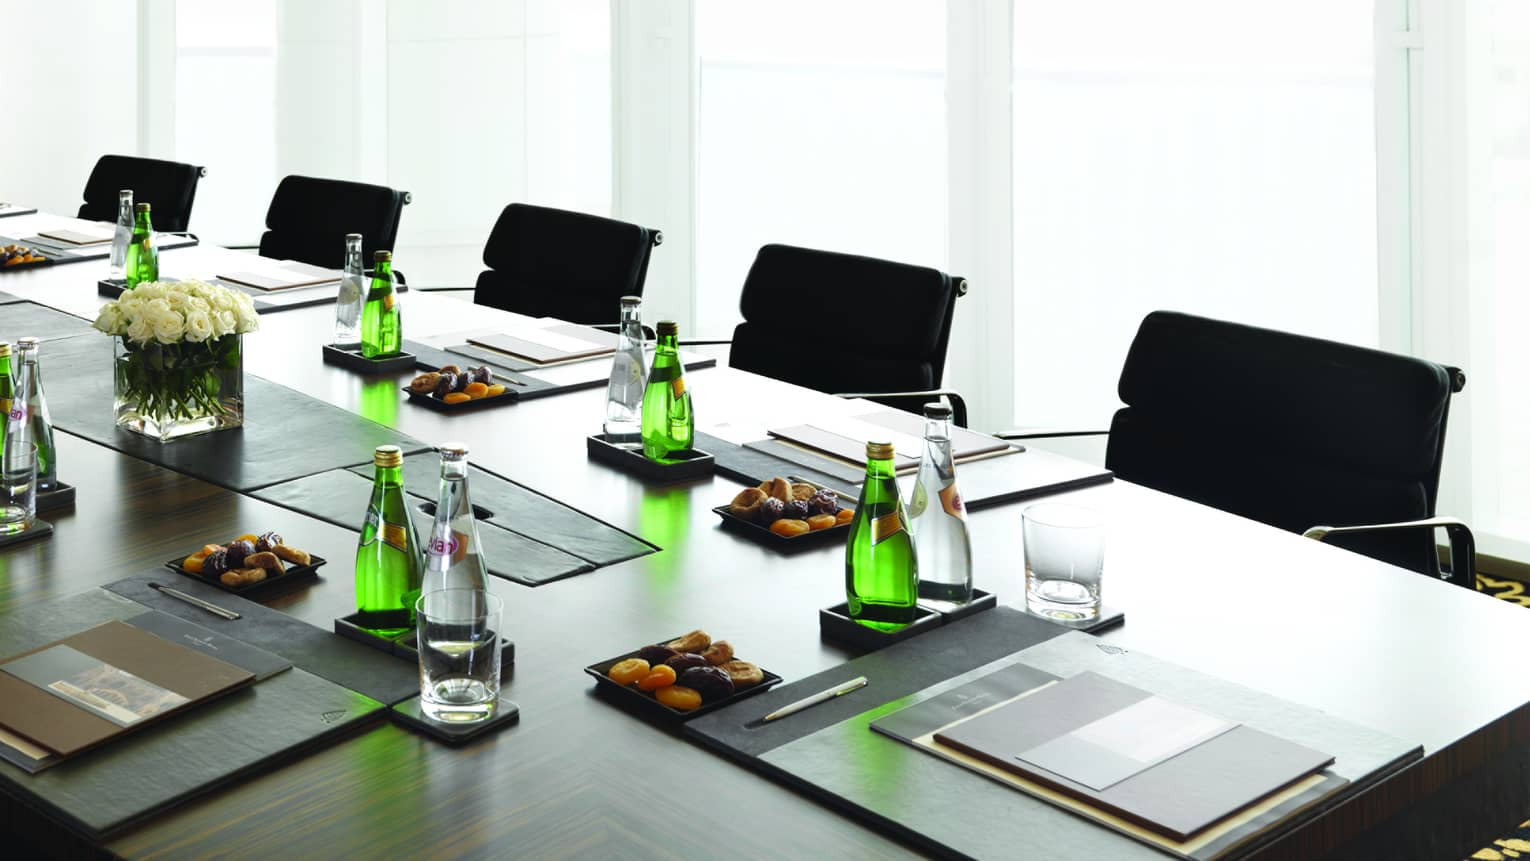 Boardroom meeting table set with water, dried apricots, menus by sunny window